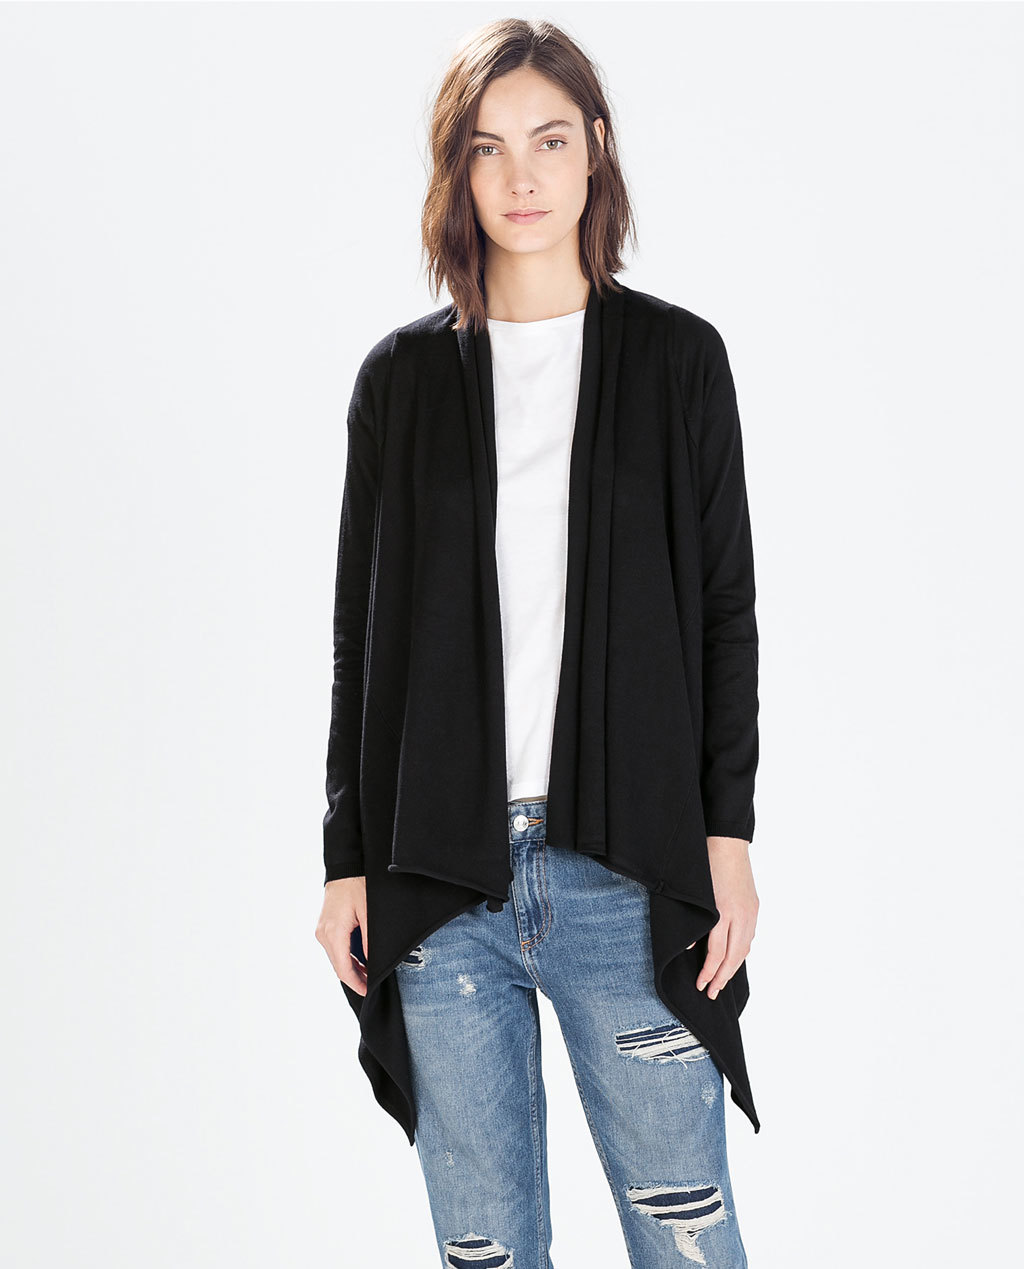 Jacket With Pointed Front - pattern: plain; collar: shawl/waterfall; length: below the bottom; predominant colour: black; occasions: casual, creative work; fit: straight cut (boxy); sleeve length: long sleeve; sleeve style: standard; collar break: low/open; pattern type: fabric; texture group: other - light to midweight; fibres: viscose/rayon - mix; style: fluid/kimono; season: s/s 2015; wardrobe: basic